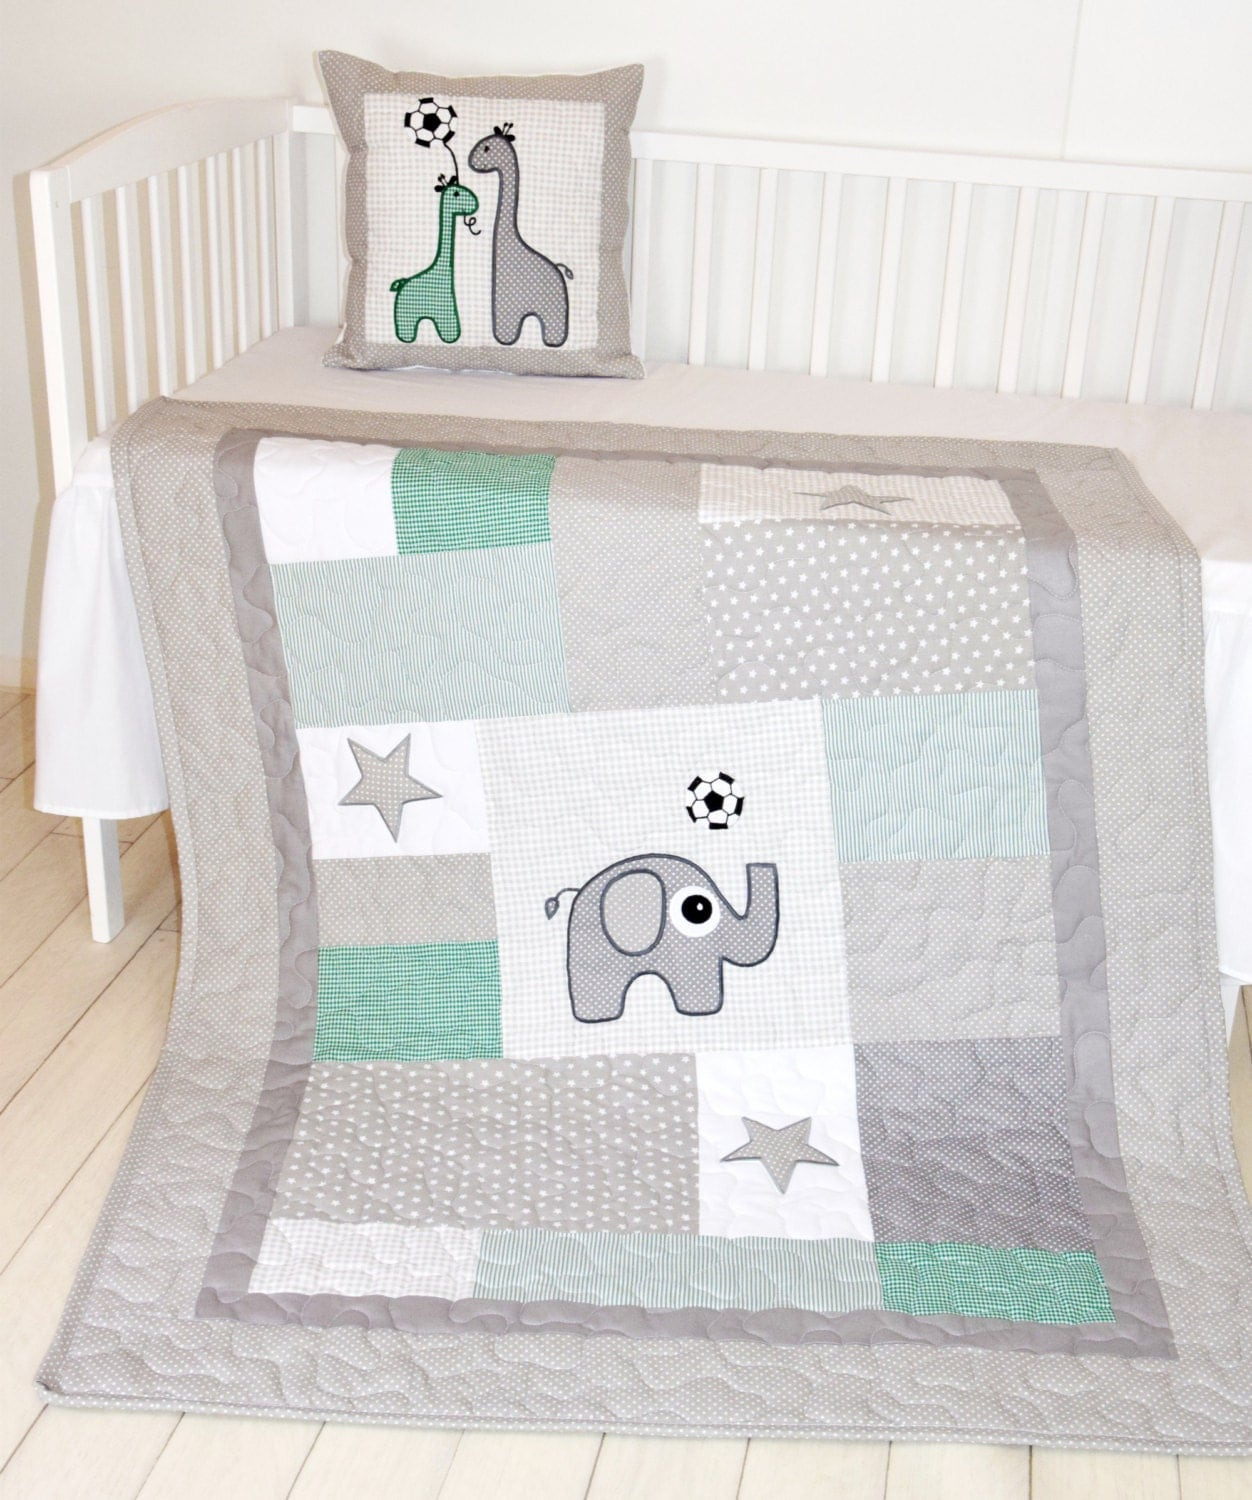 Crib pillows babies - Soccer Quilt And Pillow Sports Baby Boy Blanket Soccer Crib Bedding Soccer Pillows Green Gray White